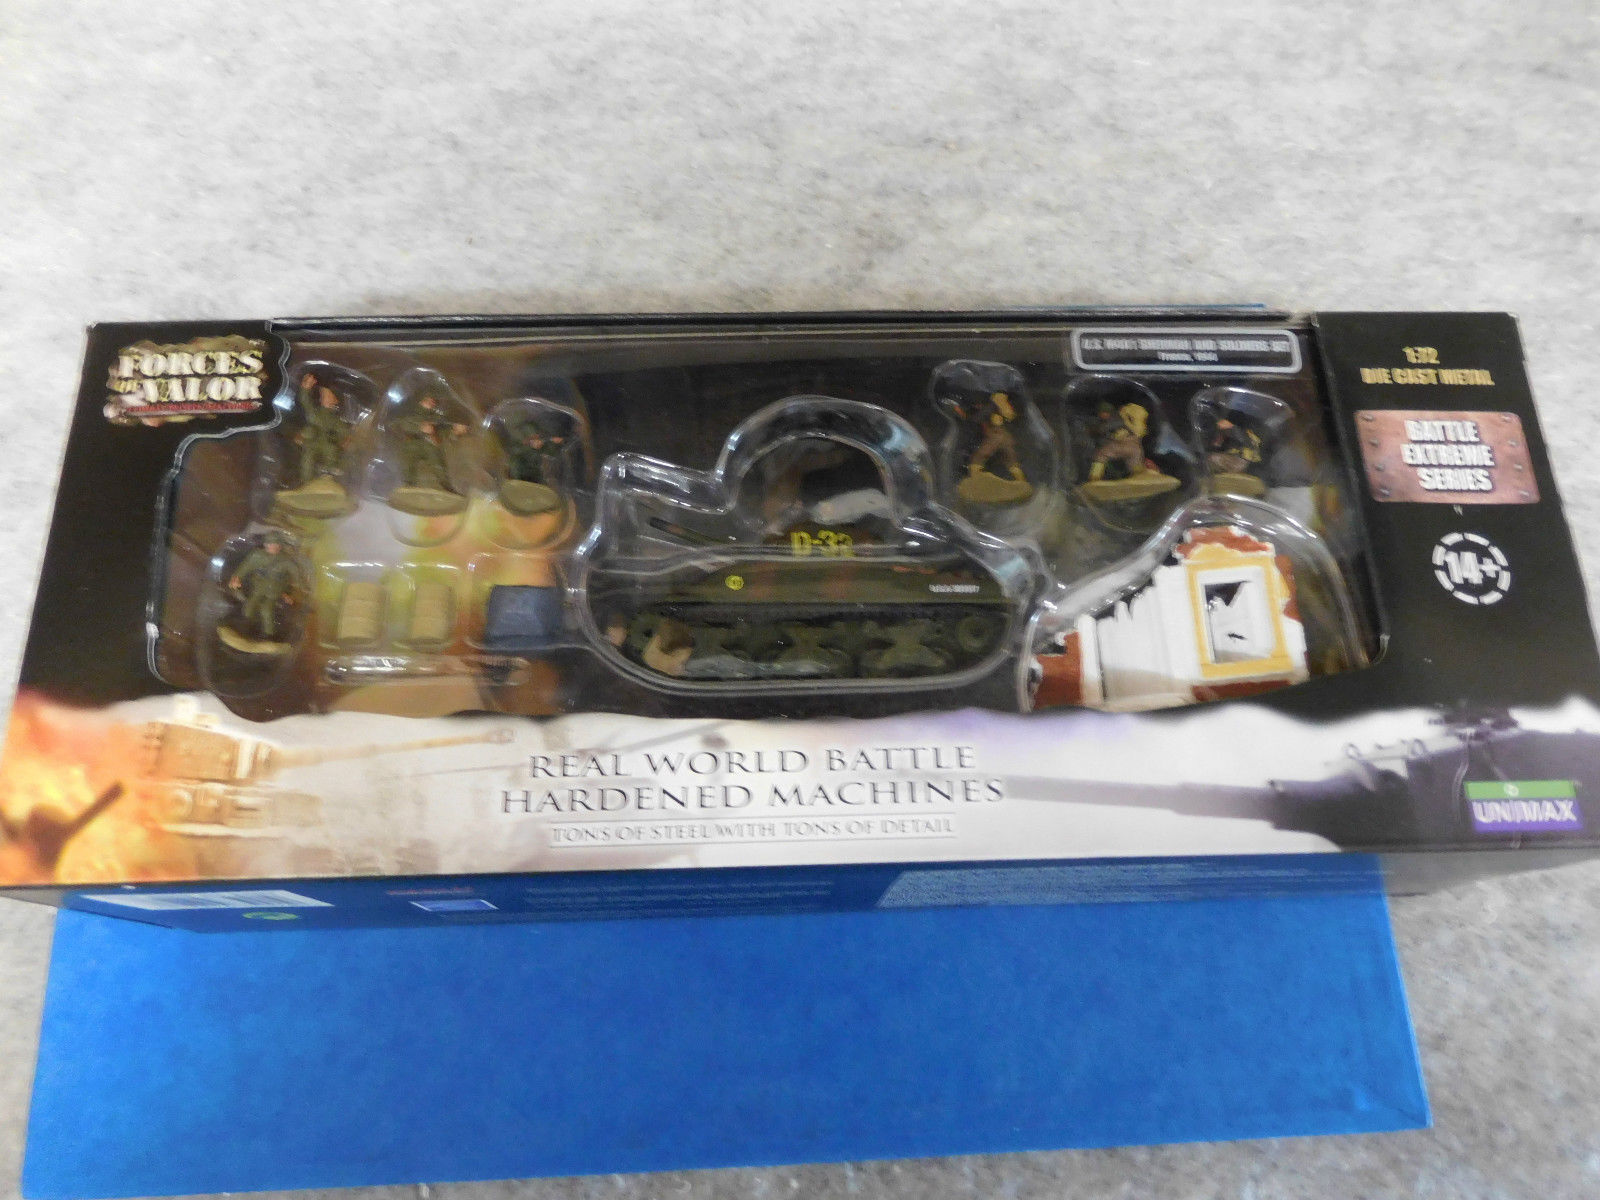 Forces of Valor 85091 Sherhomme with figurines  - 1 72 - nouveau & OVP  service attentionné